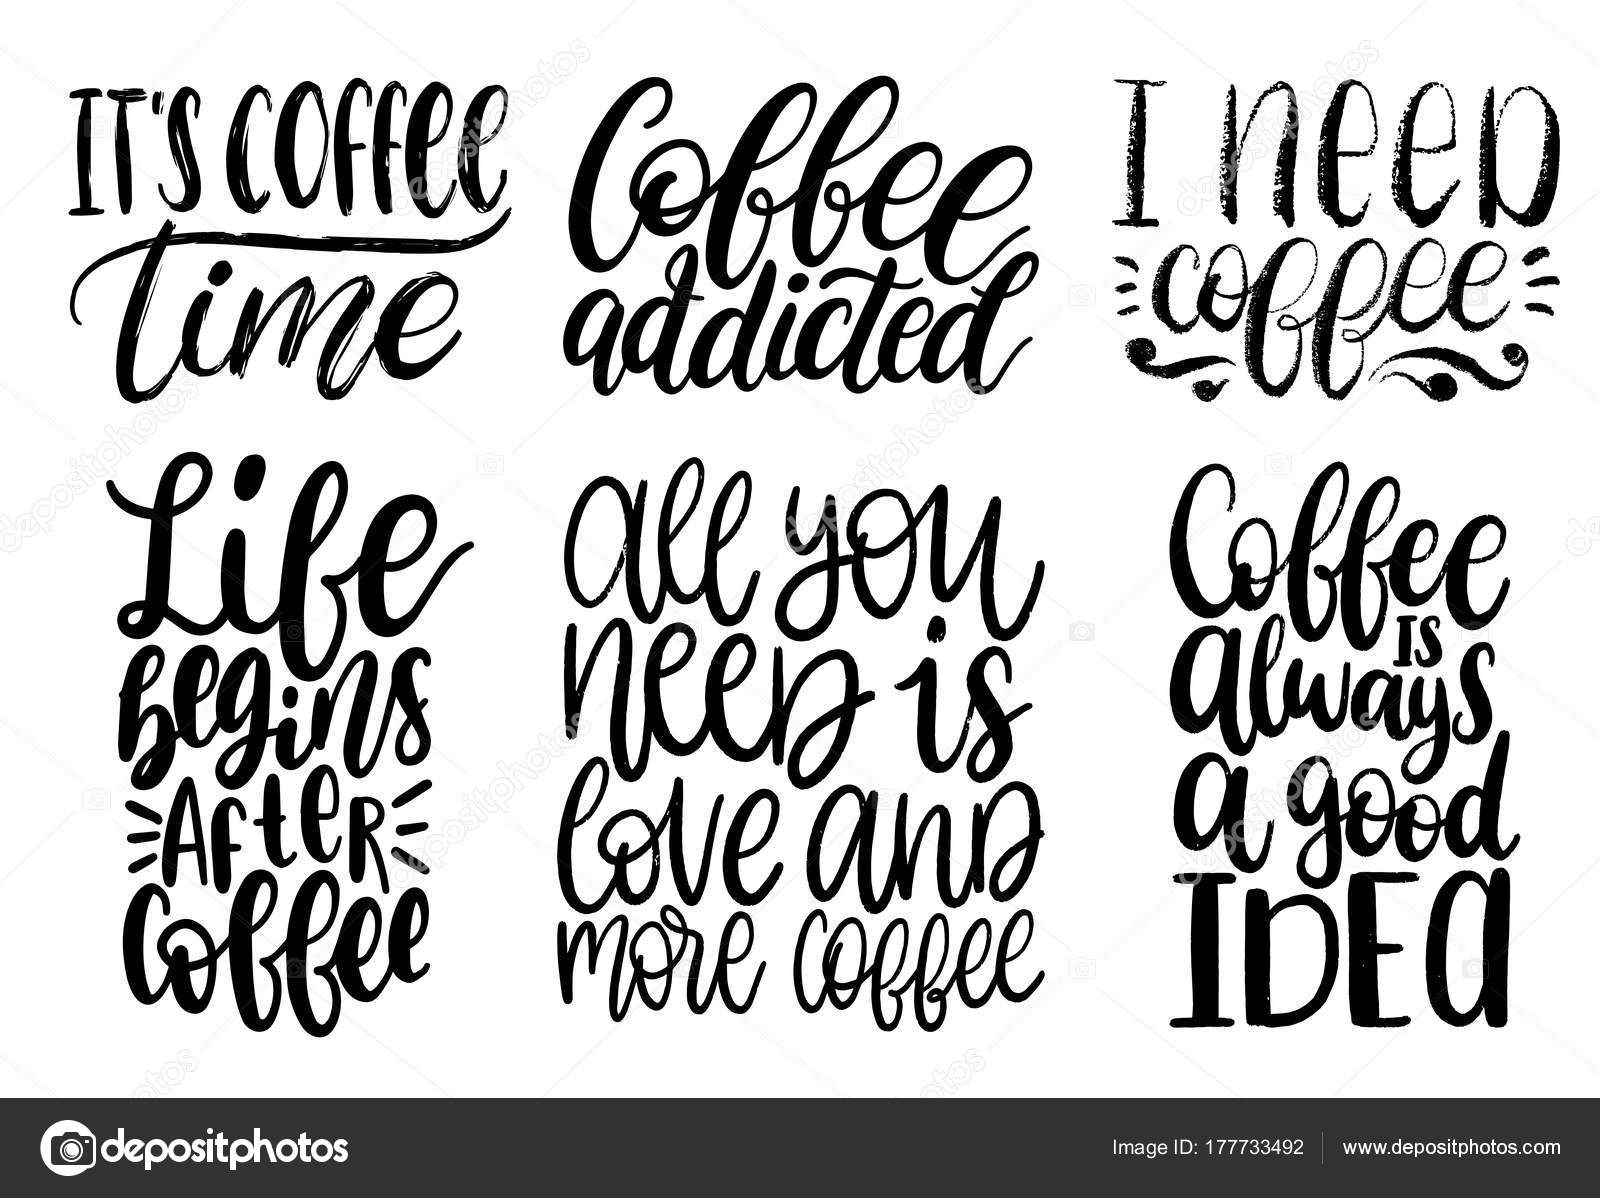 Background Coffee Quotes White Vector Handwritten Coffee Phrases Set Coffee Quotes Typography White Background Stock Vector C Vladayoung 177733492